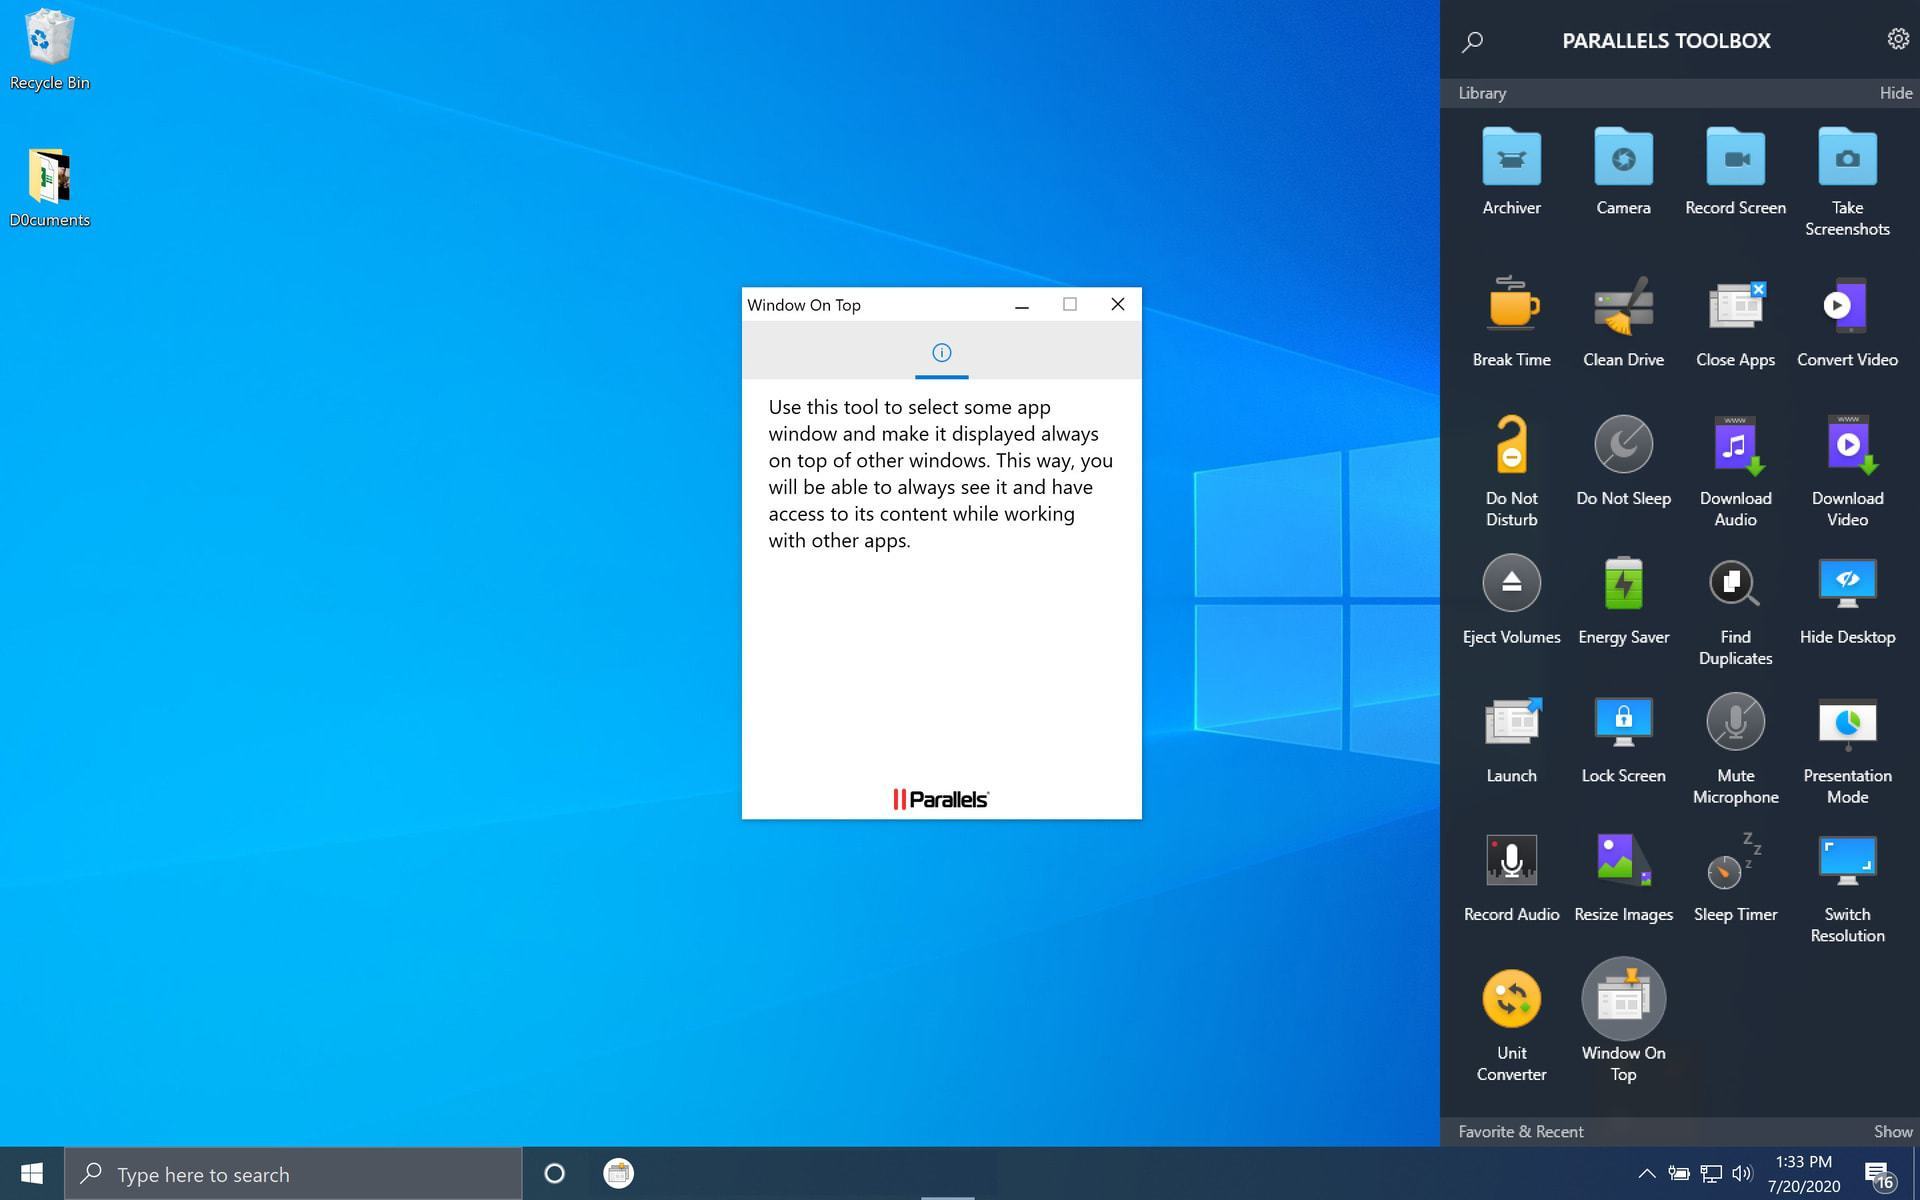 Parallels Toolbox Window on Top Windows 10 Screenshot